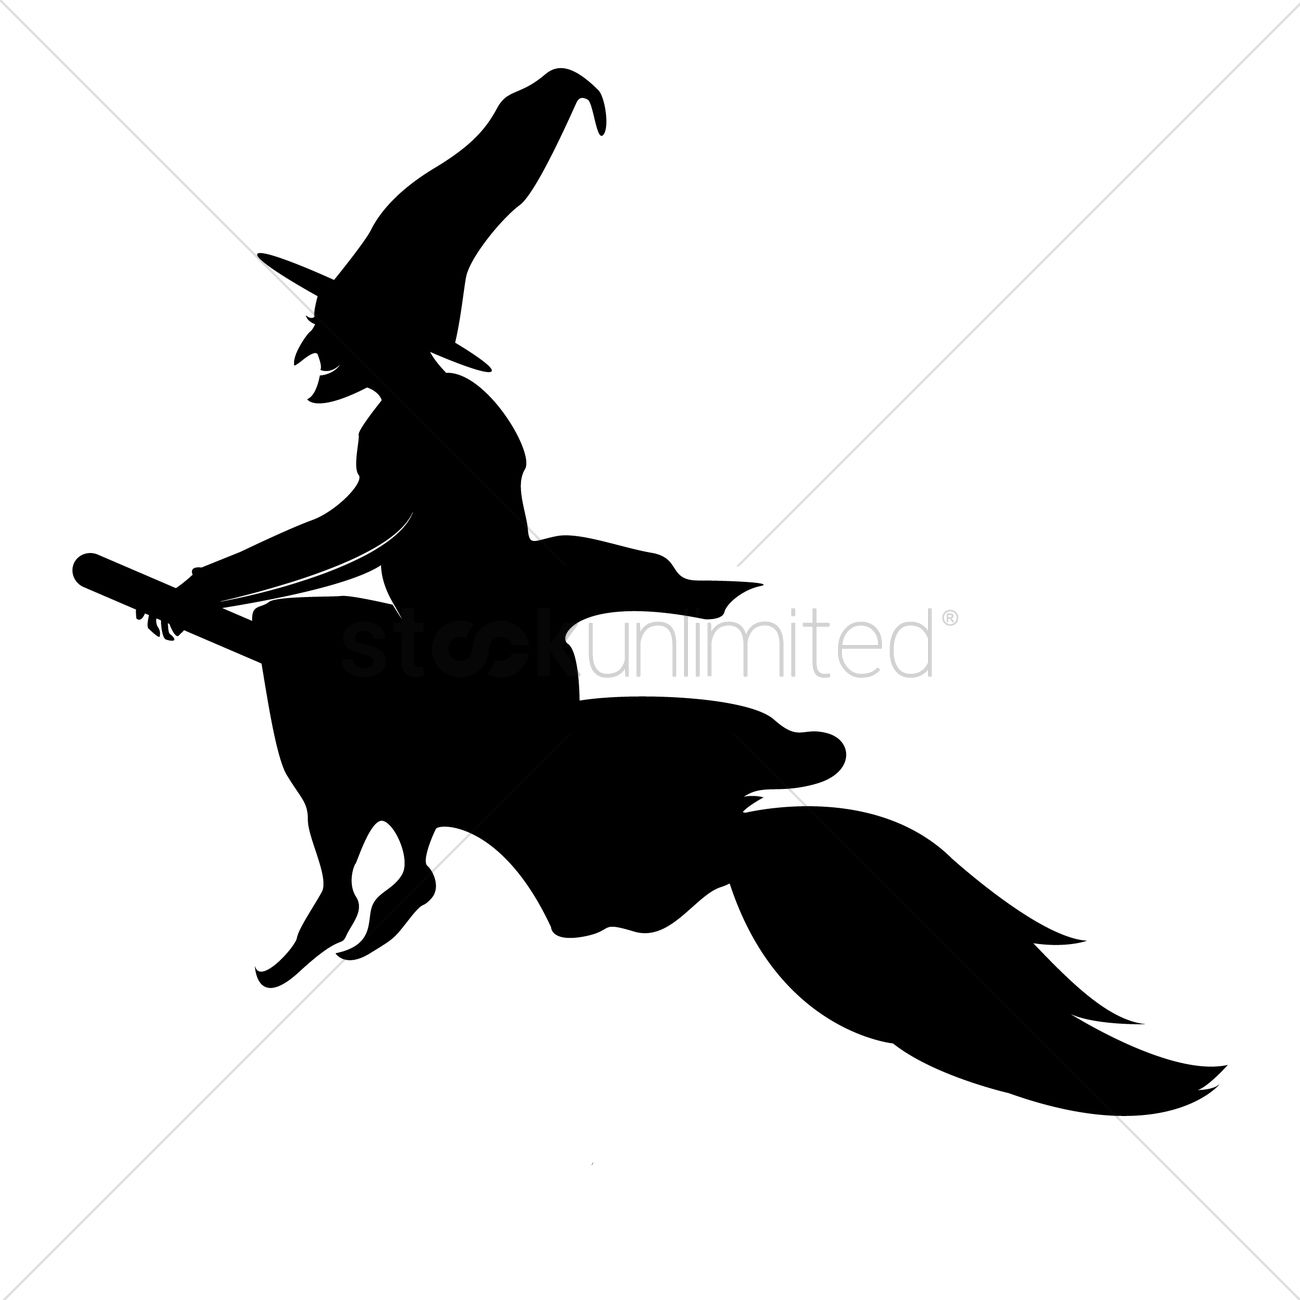 silhouette of witch on broomstick witch on broomstick silhouette free stock photo public of broomstick silhouette witch on